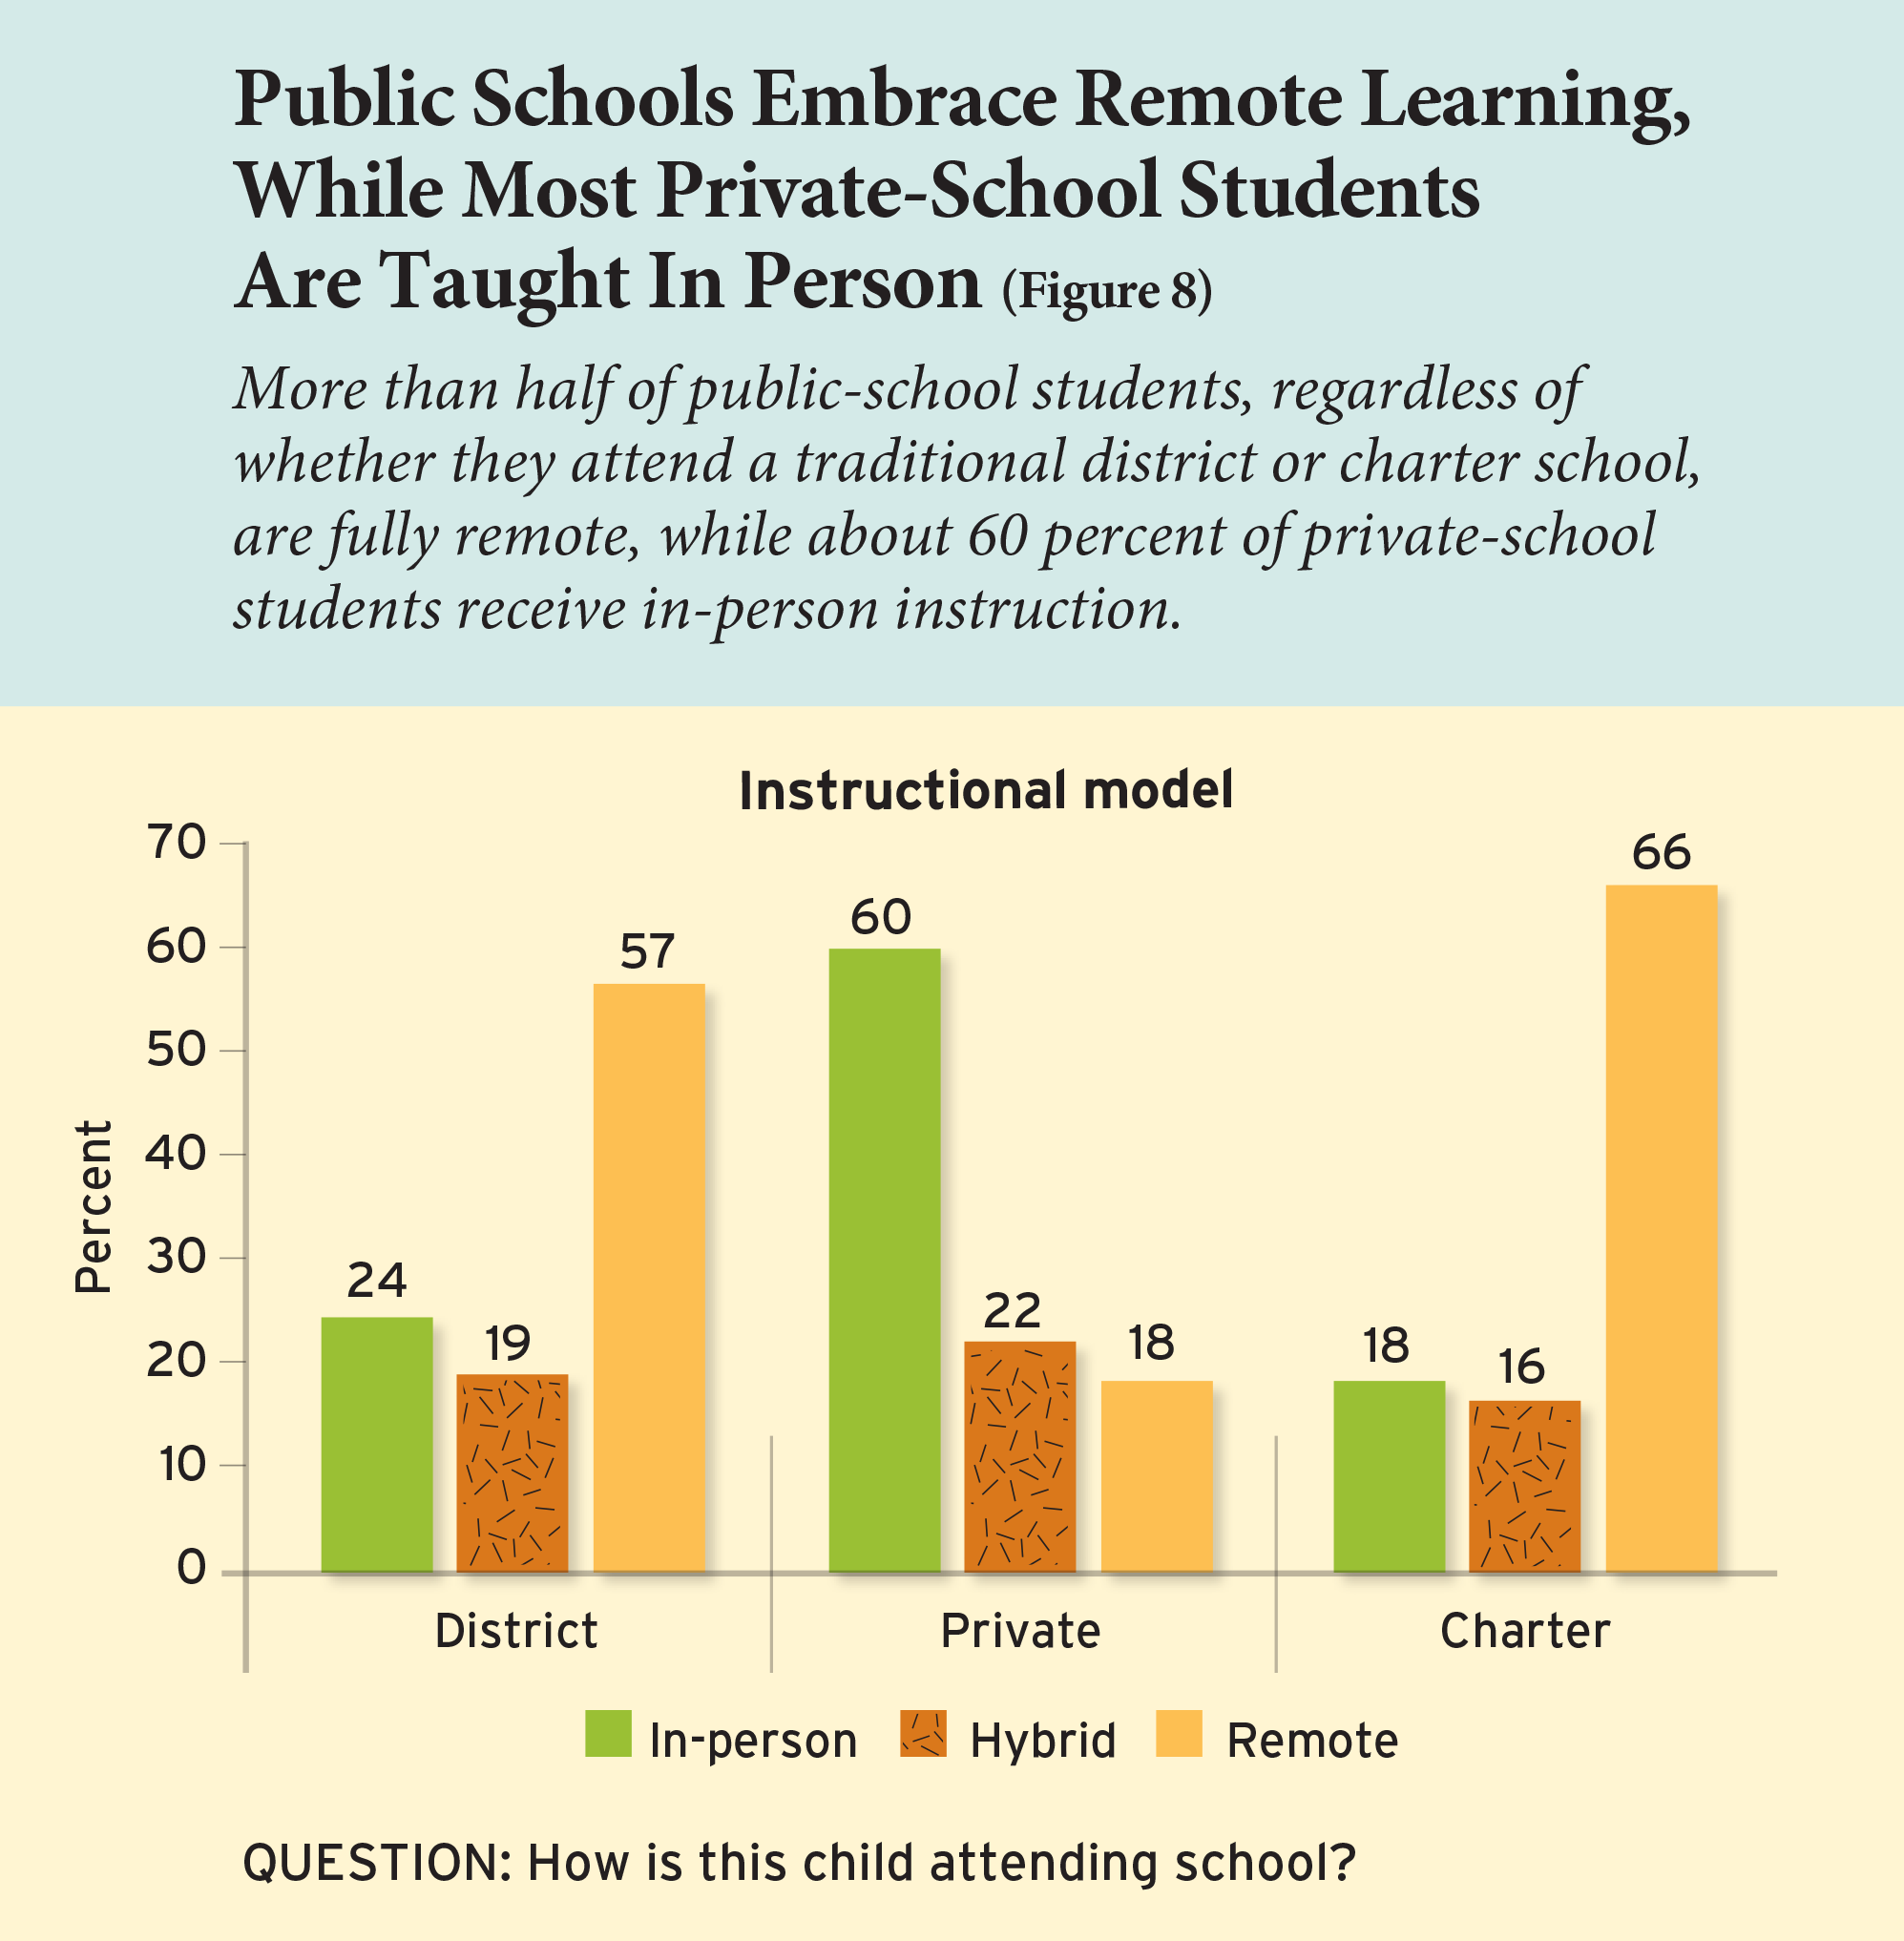 Public Schools Embrace Remote Learning, While Most Private-School Students Are Taught In Person (Figure 8)